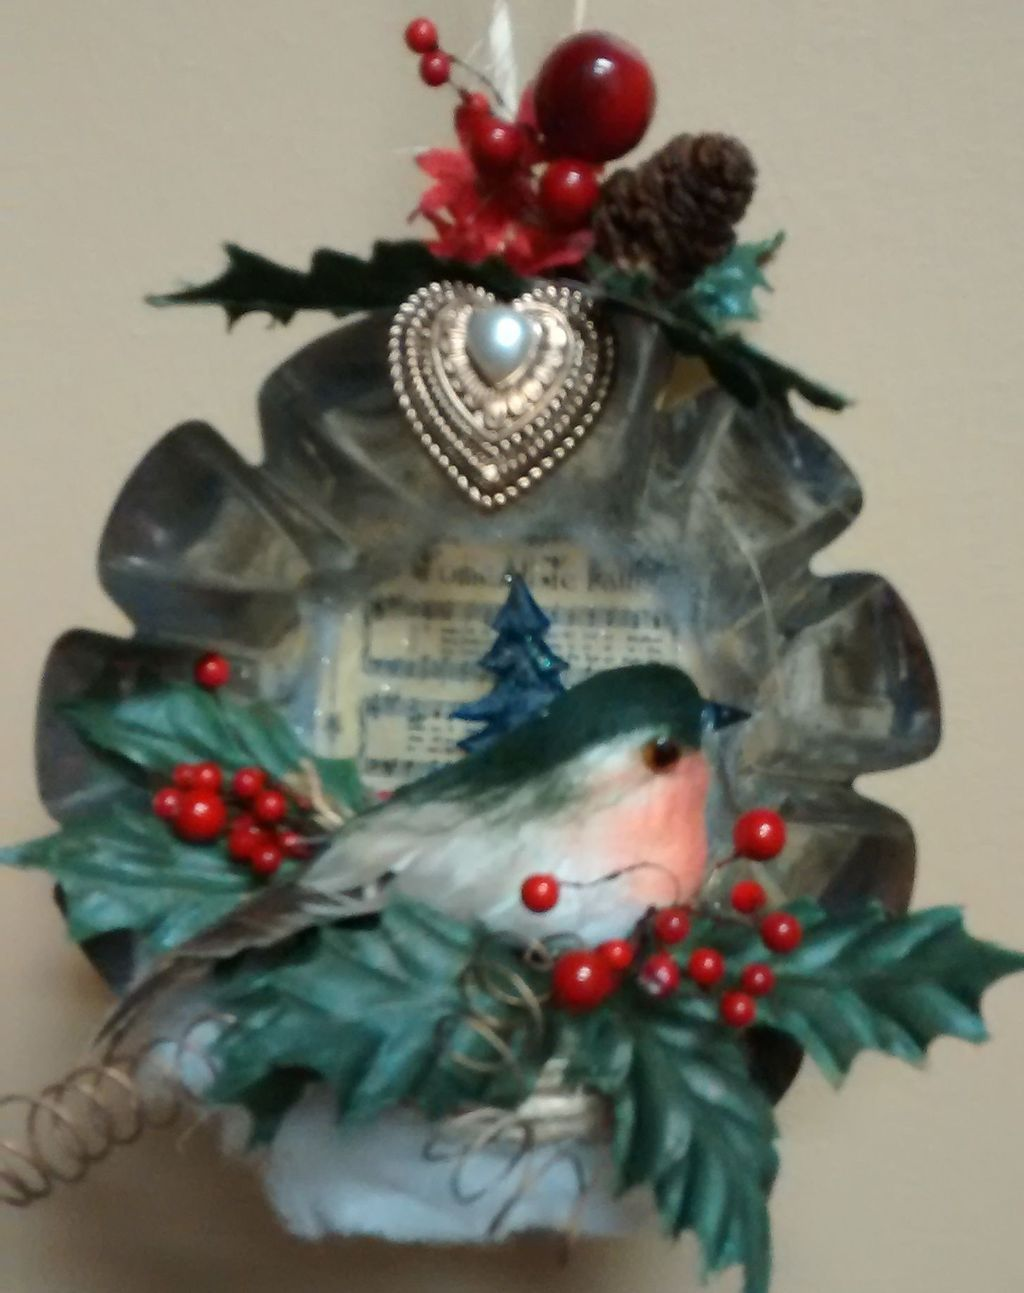 50 Amazing Vintage Christmas Ornament Ideas In 2020 Christmas Ornaments Christmas Crafts Vintage Christmas Crafts